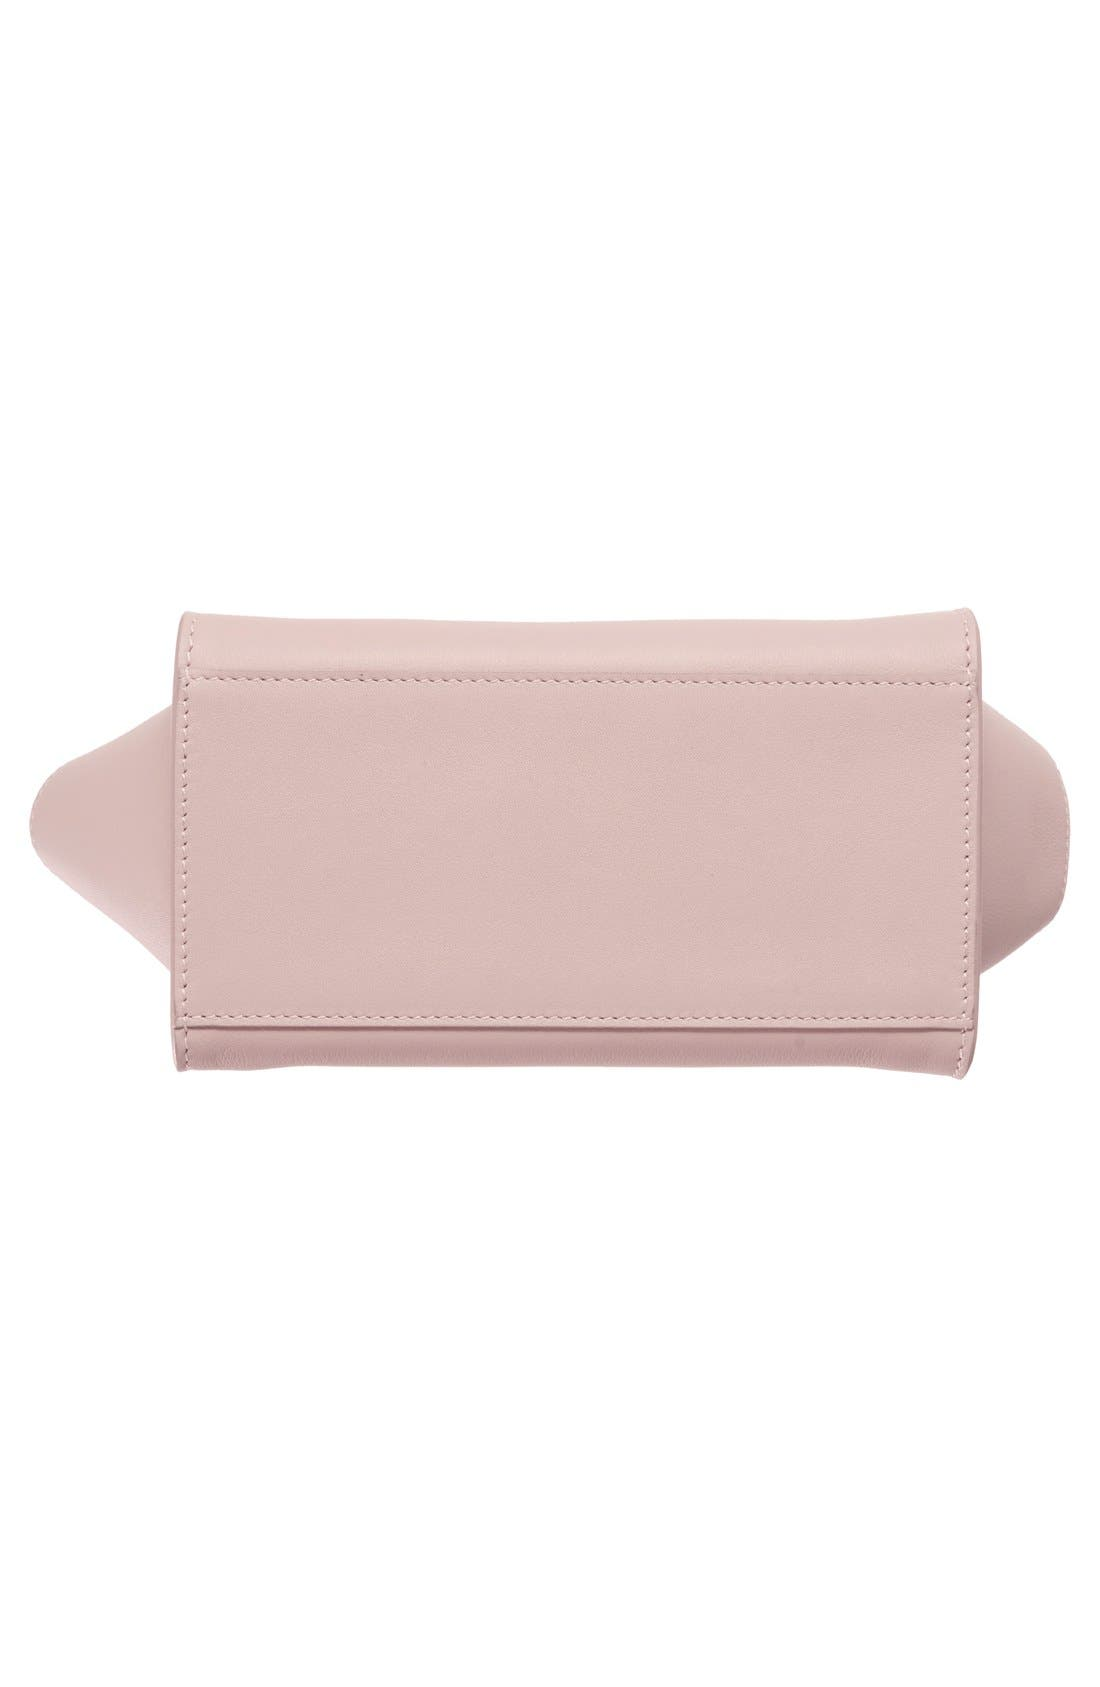 Toy Cabas Leather Crossbody Bag,                             Alternate thumbnail 6, color,                             Rose Antic